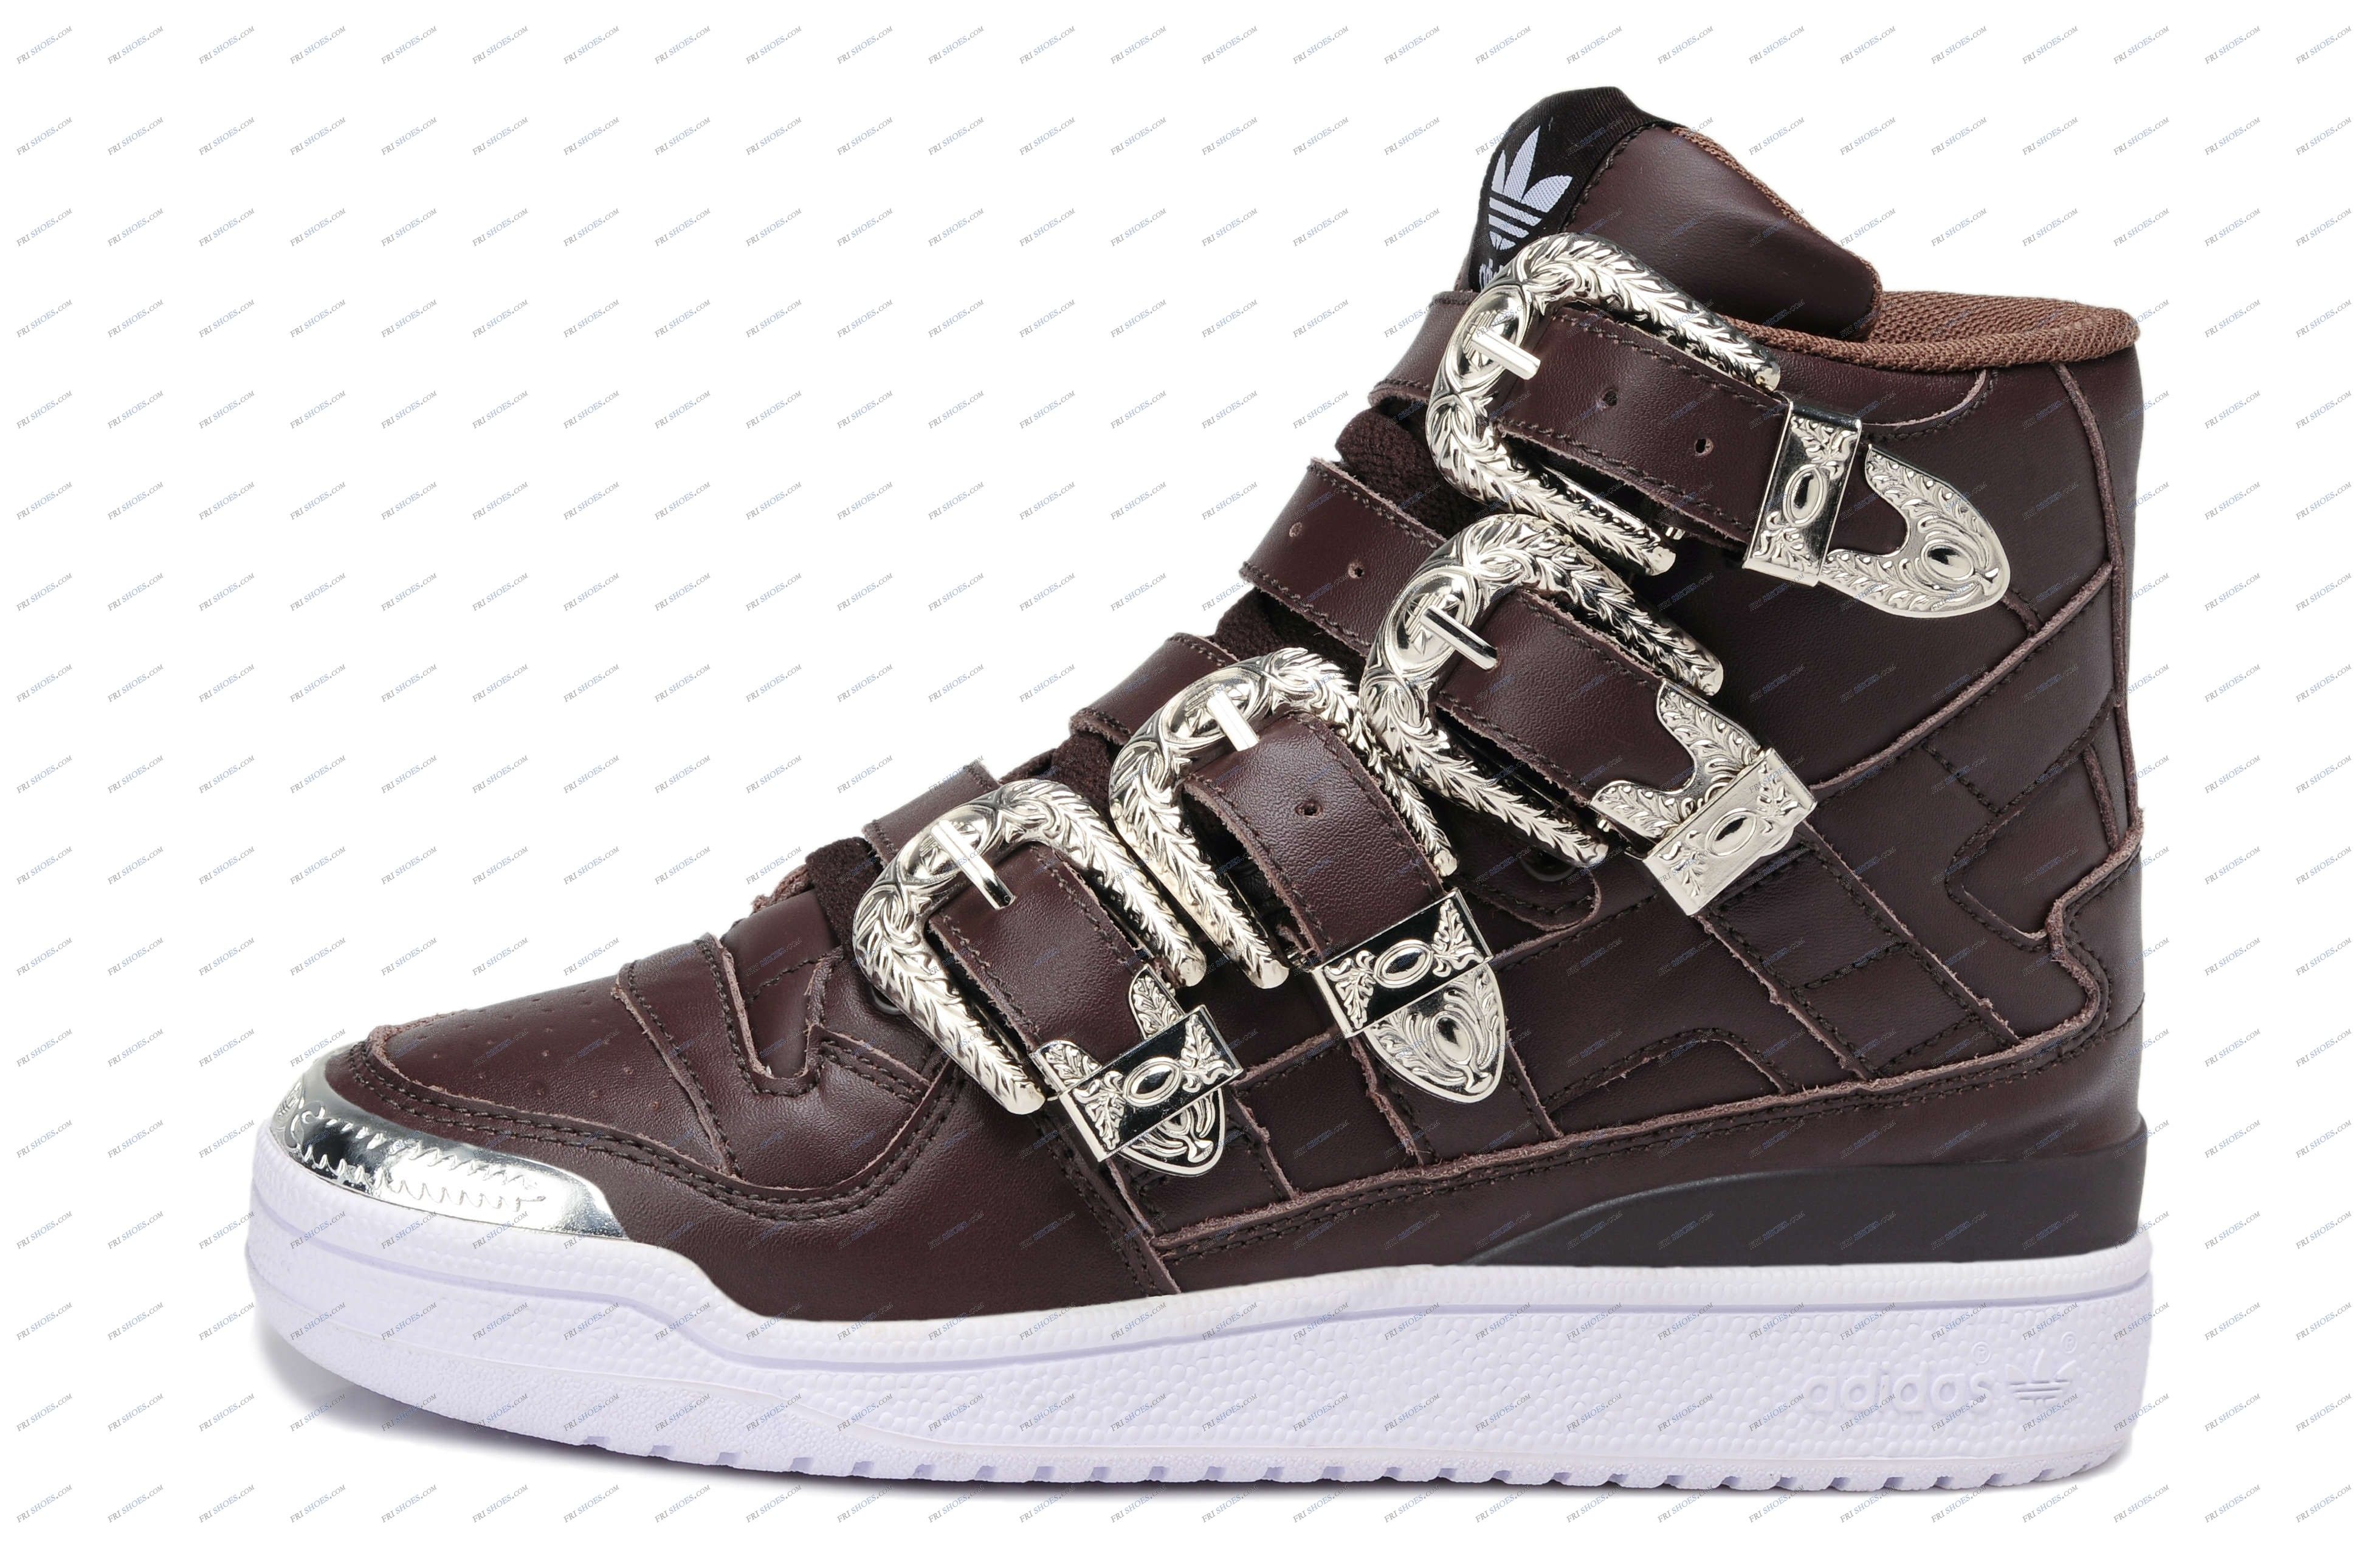 5a1d7a4bcd76 Adidas Originals Jeremy Scott Forum Hey Metal Brown Women s Running Shoes  shoes online india